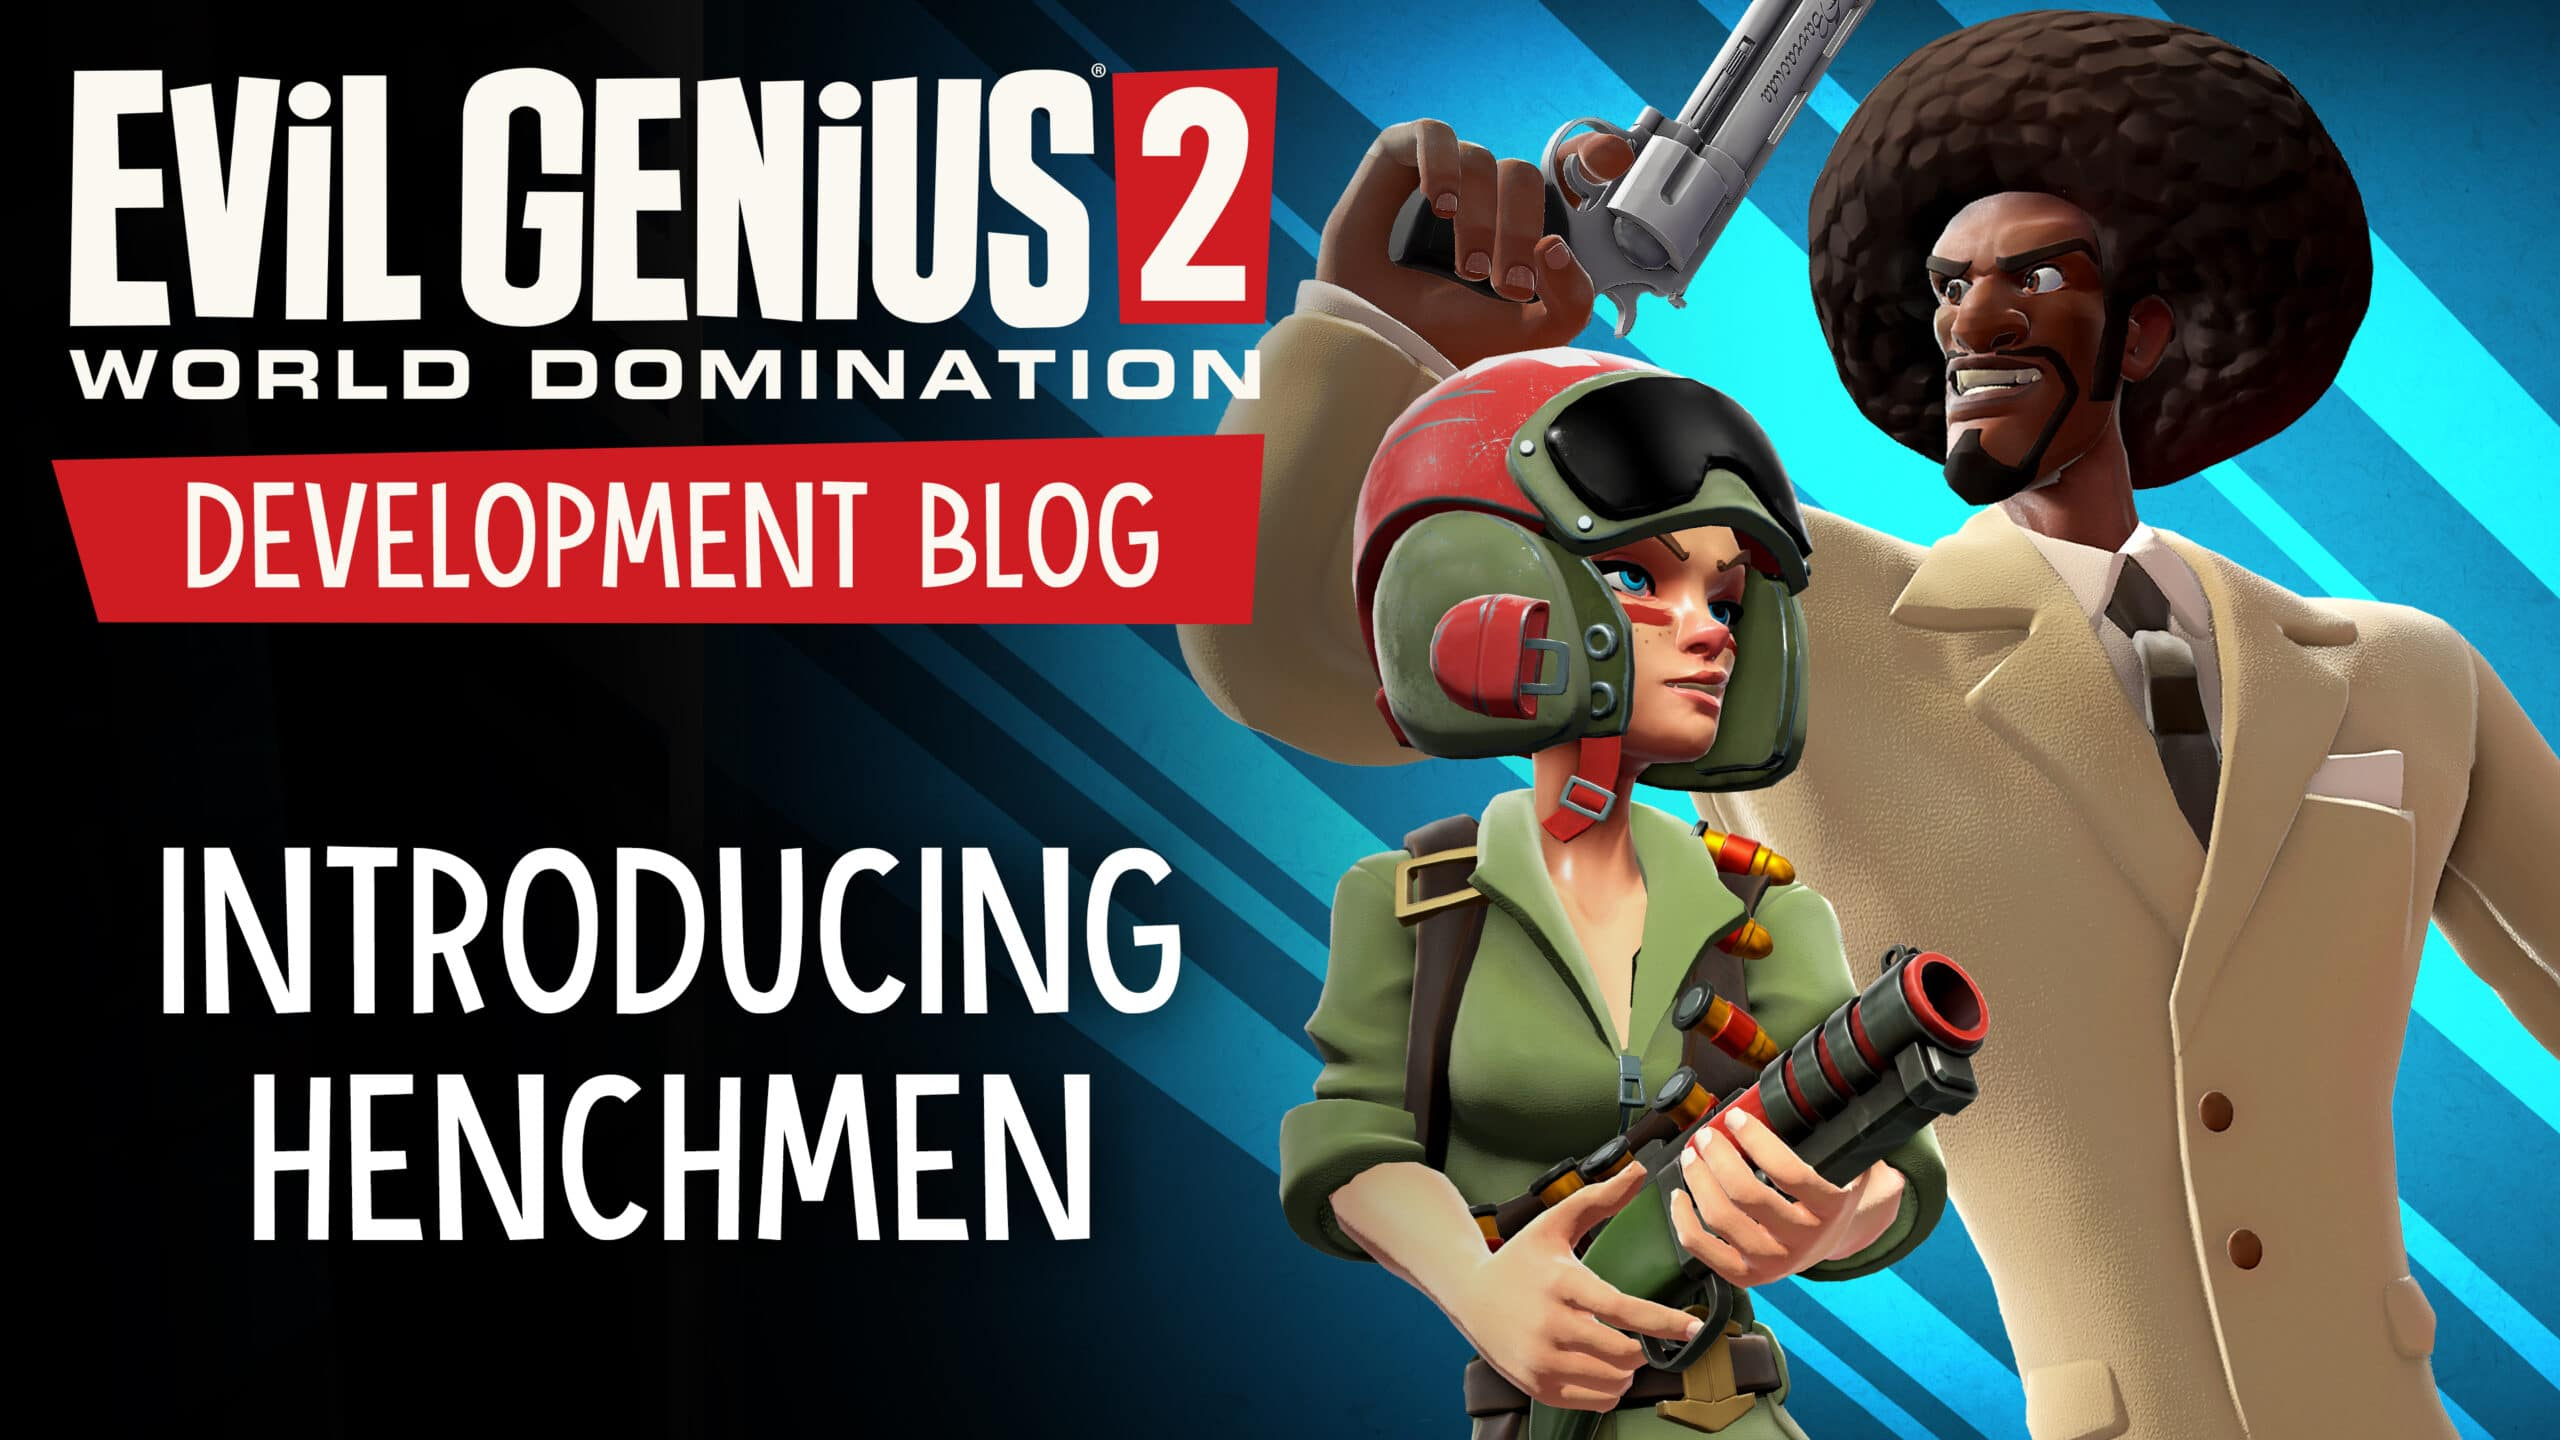 Development Blog – Introducing Henchmen!